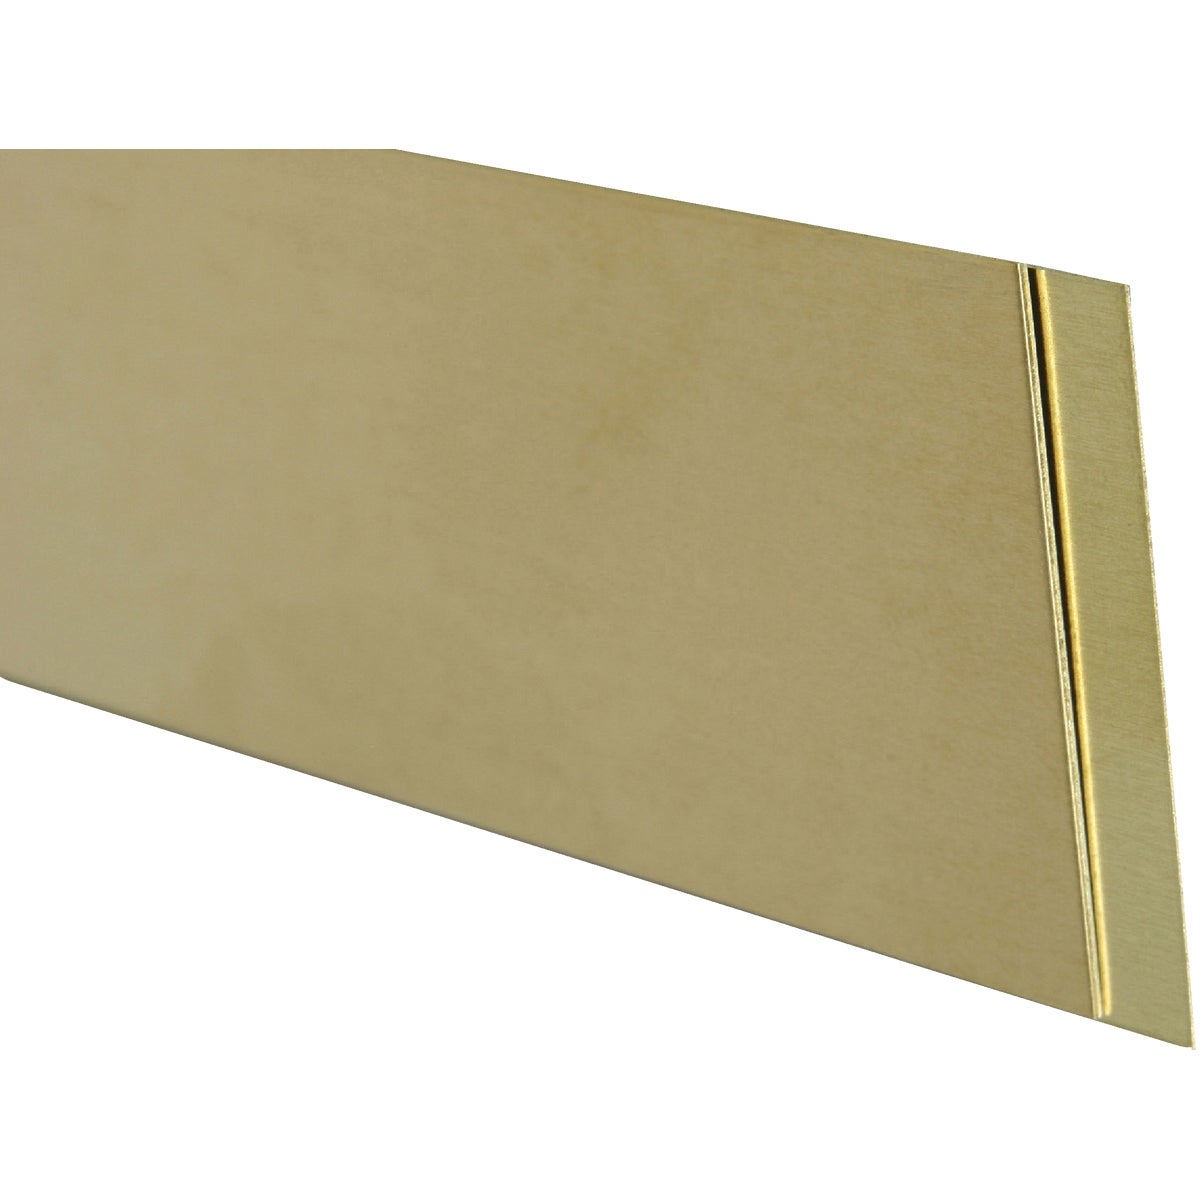 .064X3/4X12 BRASS STRIP - 8247 by K&s Precision Metals